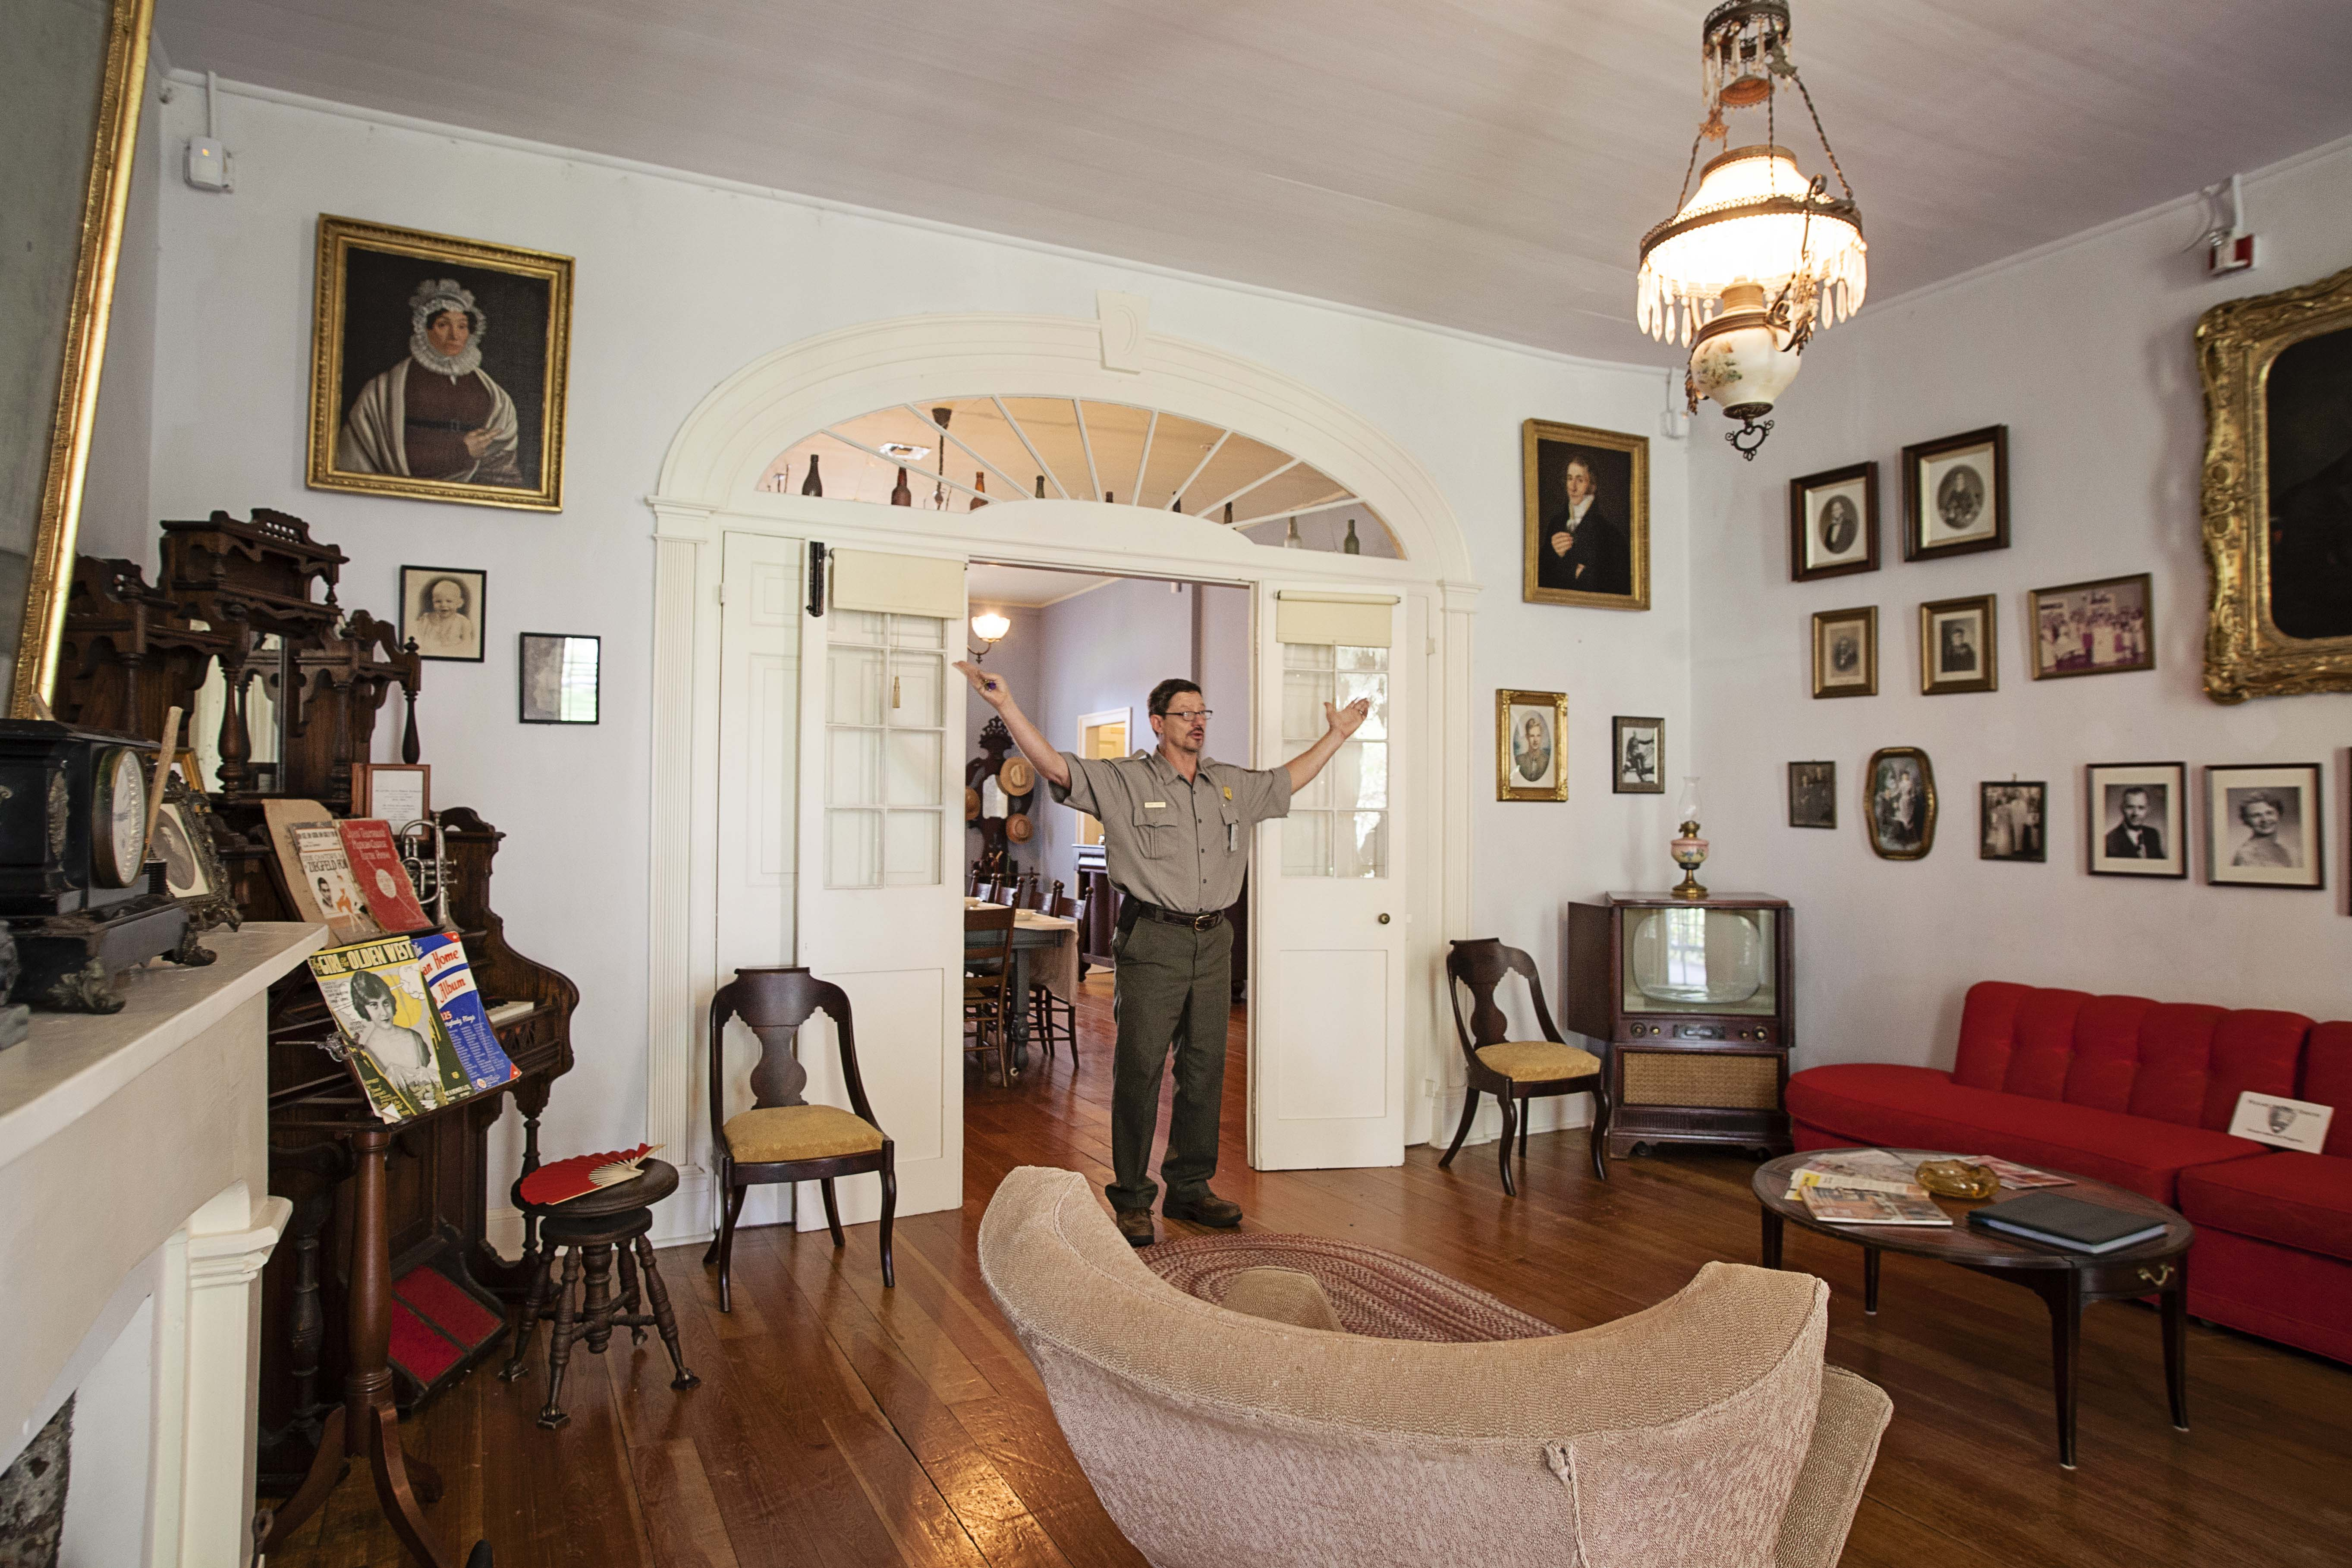 A park ranger stands in the Parlor of the Main House. Behind the ranger are double doors, over which is a large fan light, leading to the Dining Room.